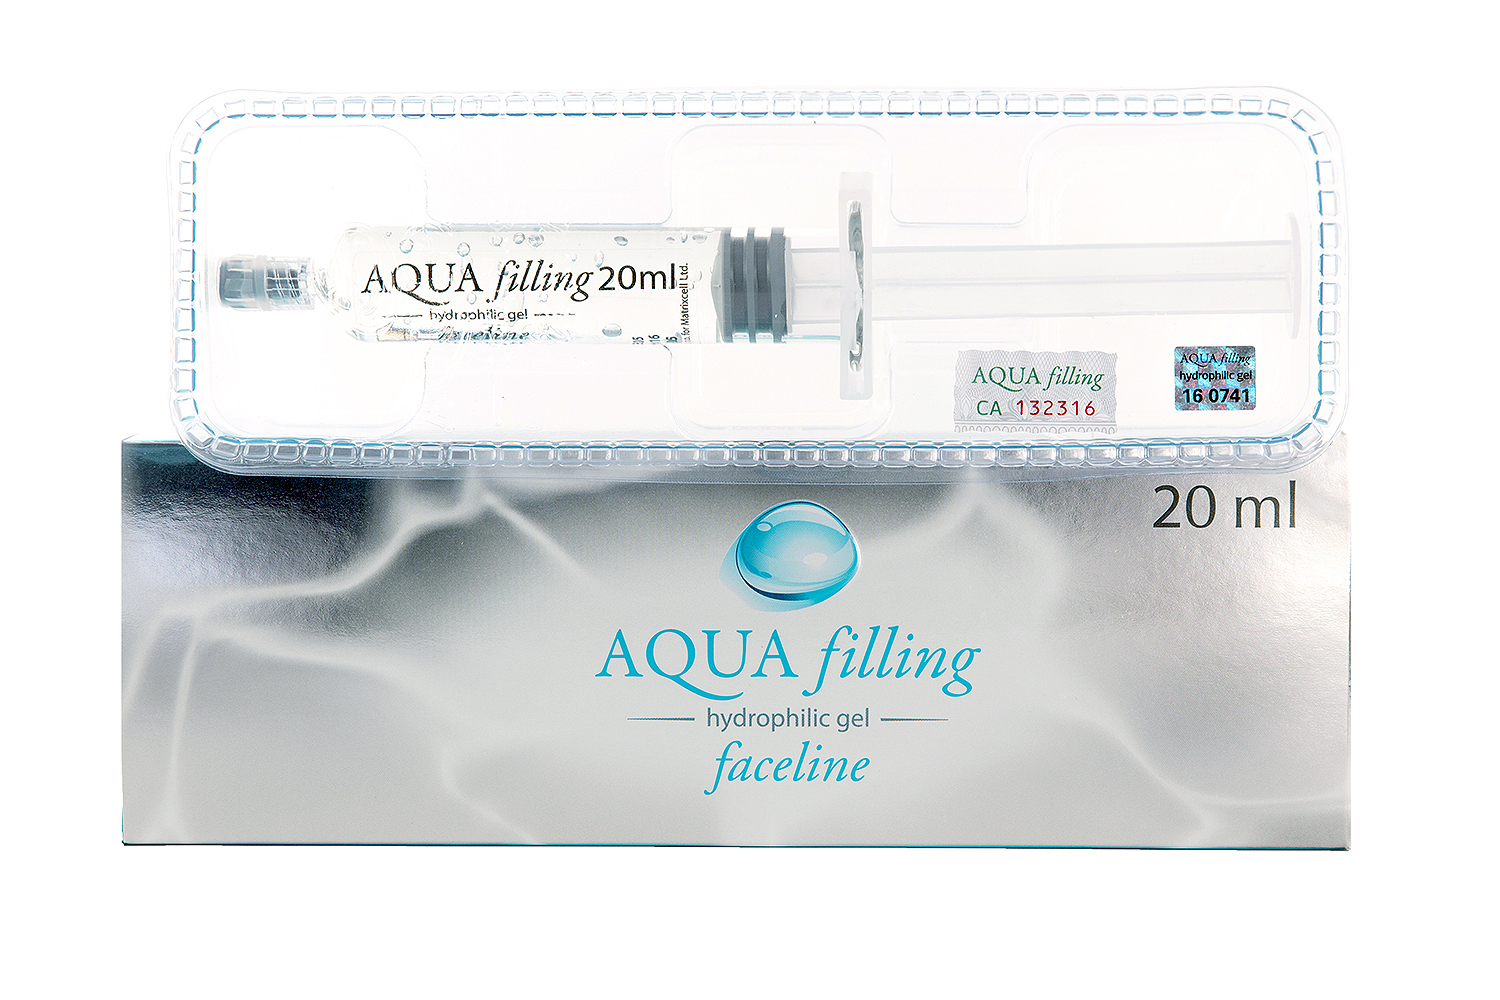 AQUAfilling 20ml